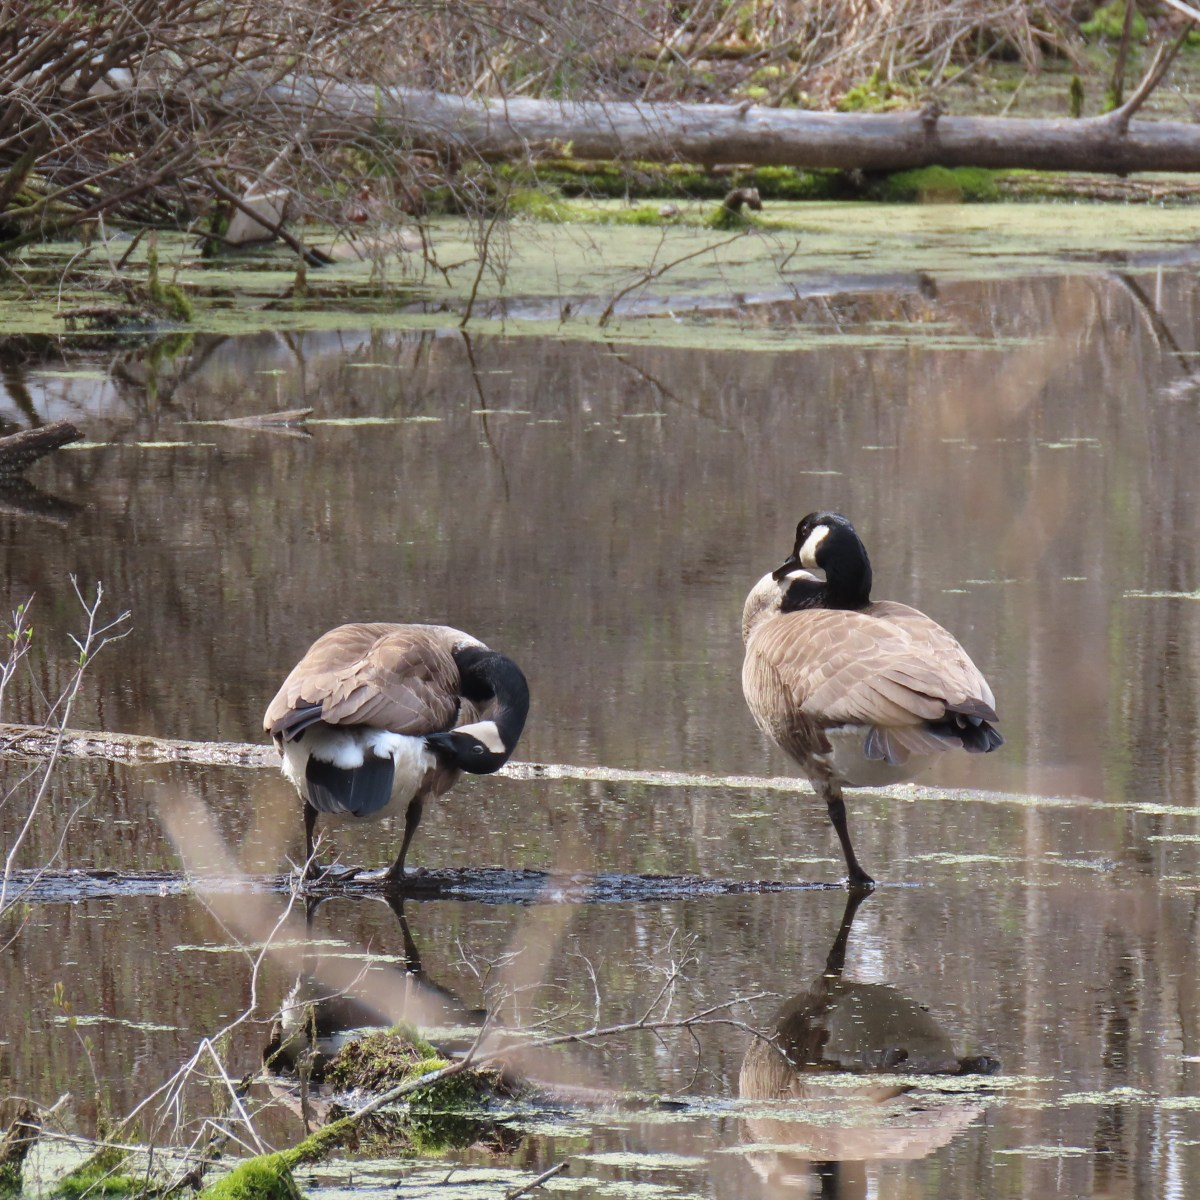 Two geese stand still in a marsh in yoga-like poses